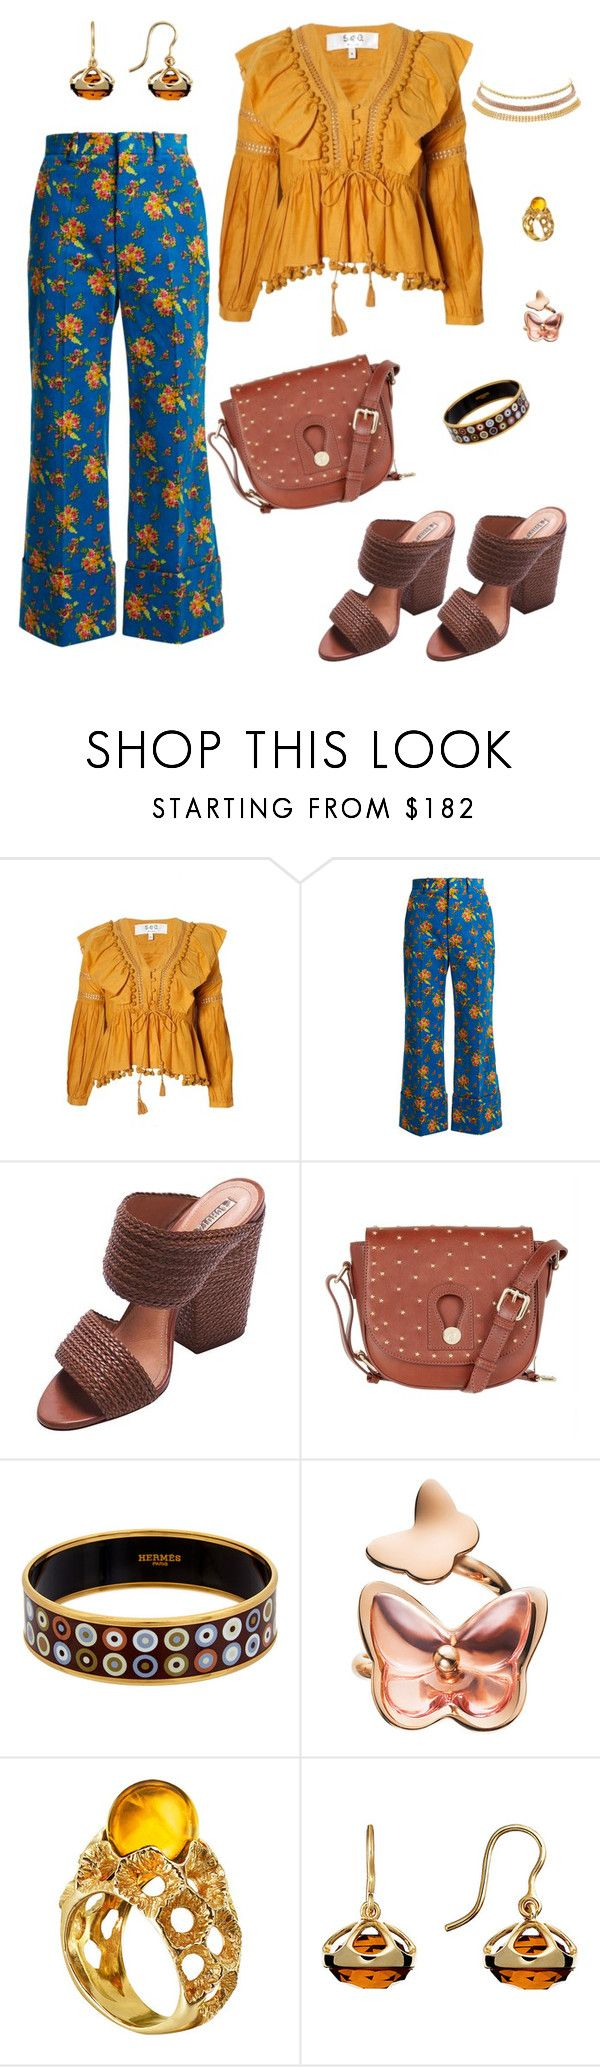 """""""floral pants+pom pom blouse"""" by marlenewelke ❤ liked on Polyvore featuring Sea, New York, Gucci, Schutz, Somerset by Alice Temperley, Hermès, Baccarat and Charlotte Russe"""